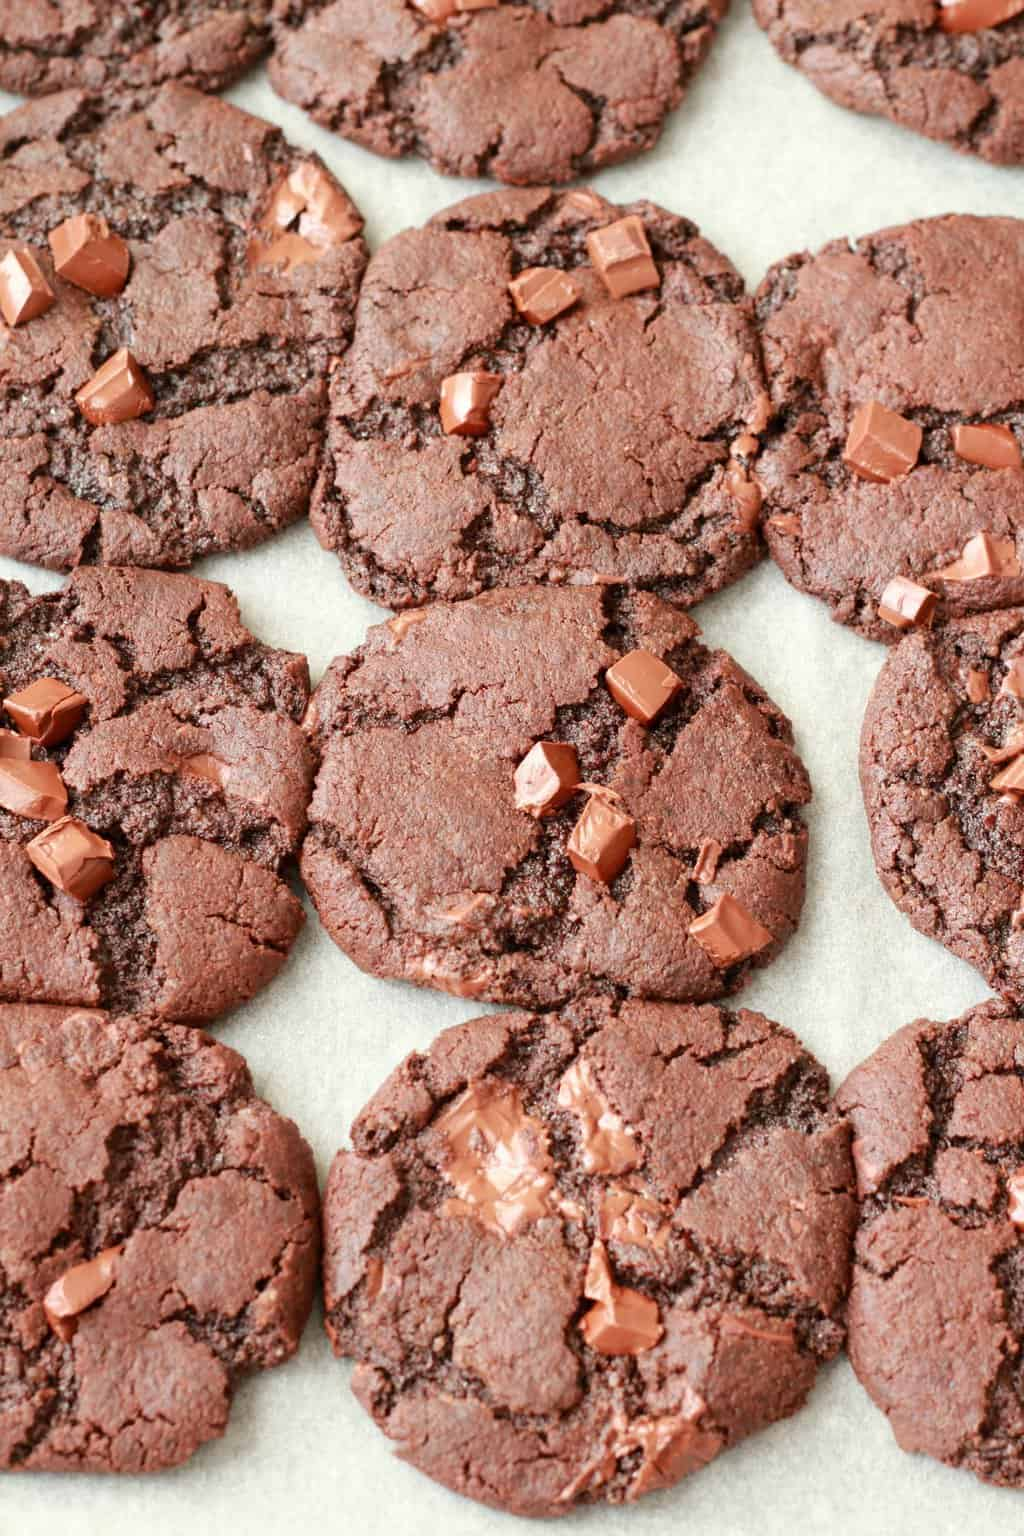 Vegan chocolate cookies on a parchment lined baking tray freshly baked.